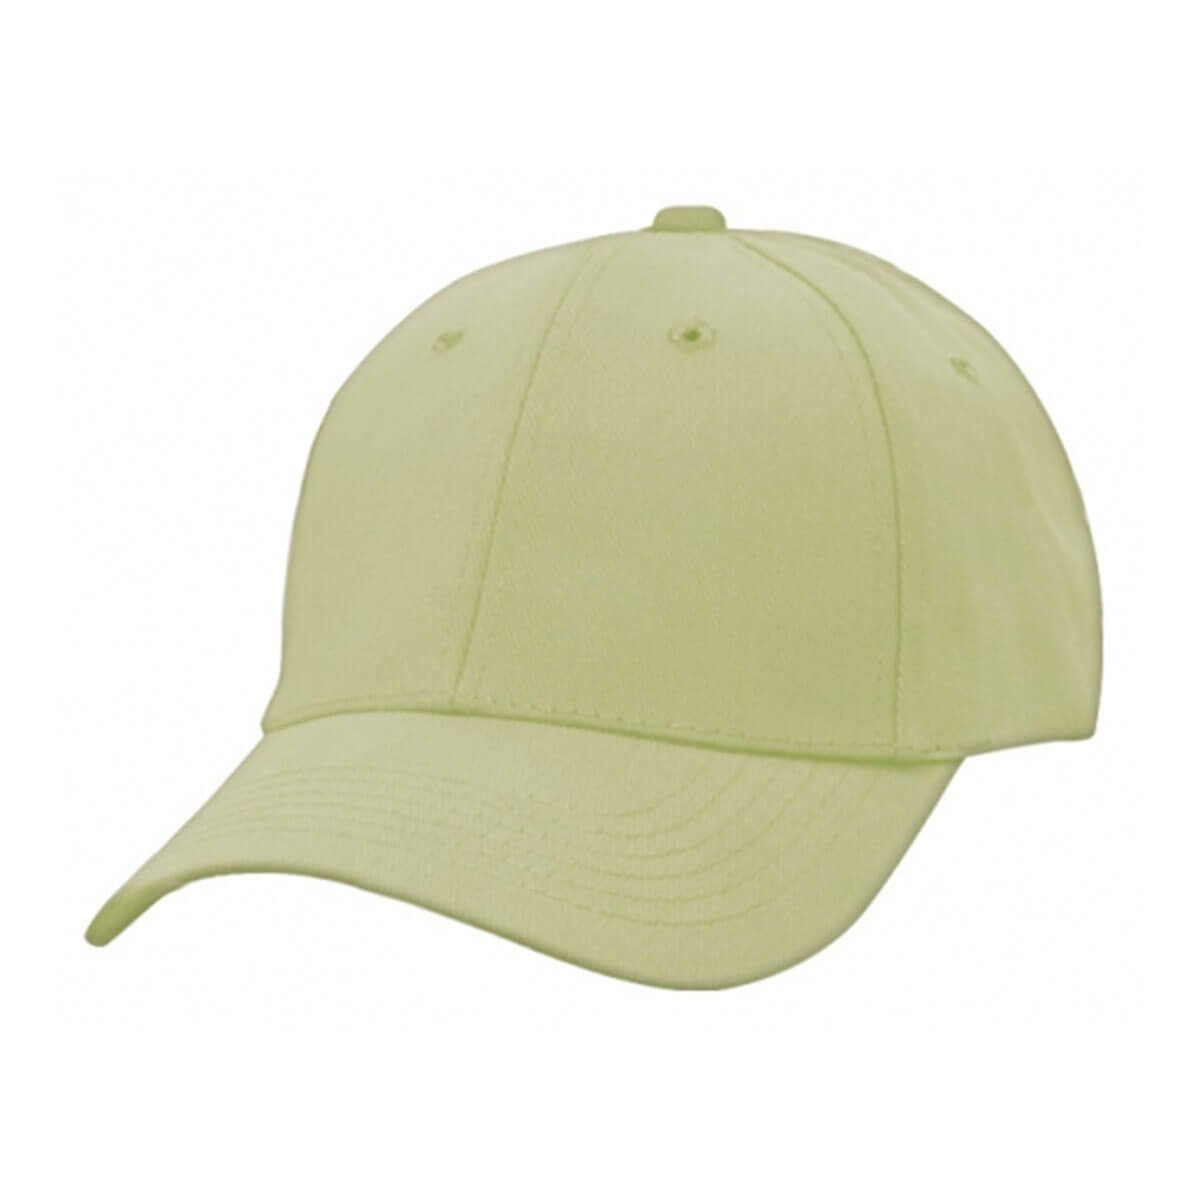 Heavy Brushed Cotton Cap-Natural